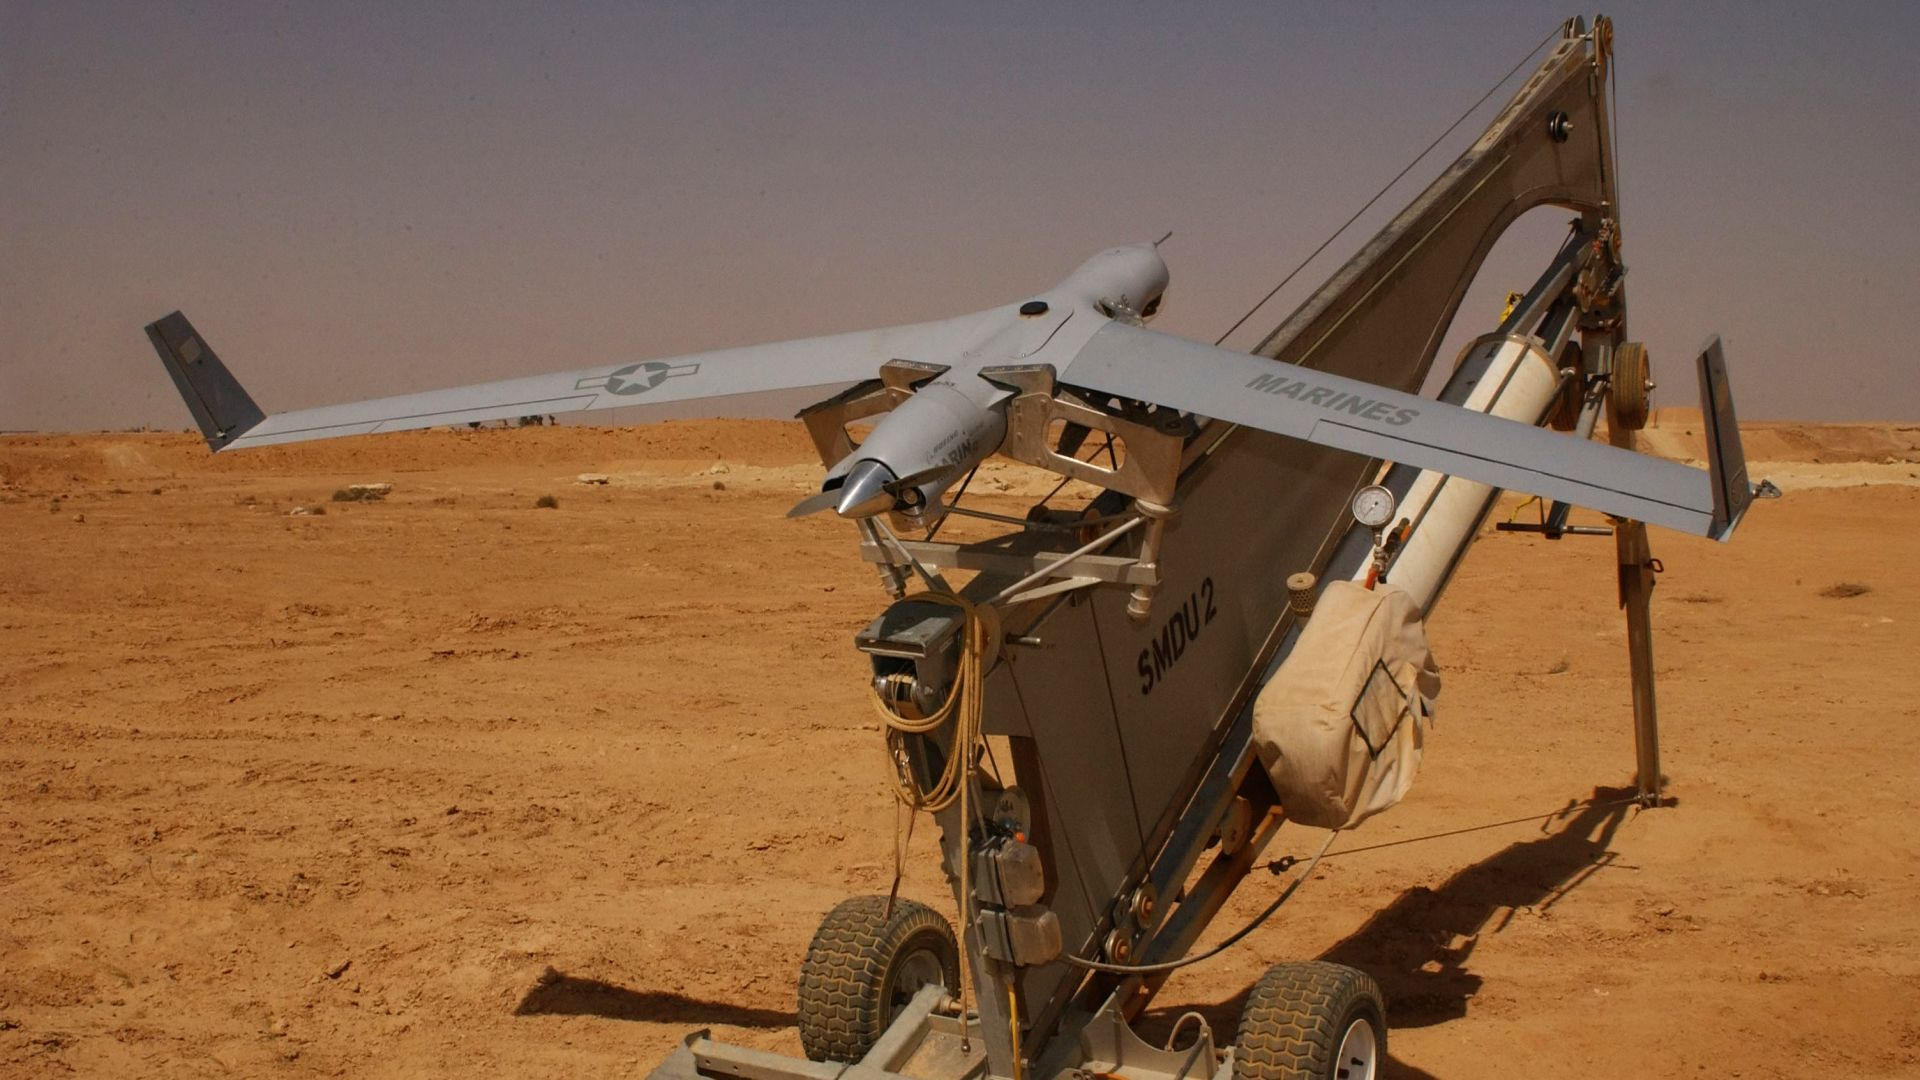 ScanEagle, дрон, БПЛА, ВВС США, ScanEagle, drone, UAV, U.S. Army, U.S. Air Force